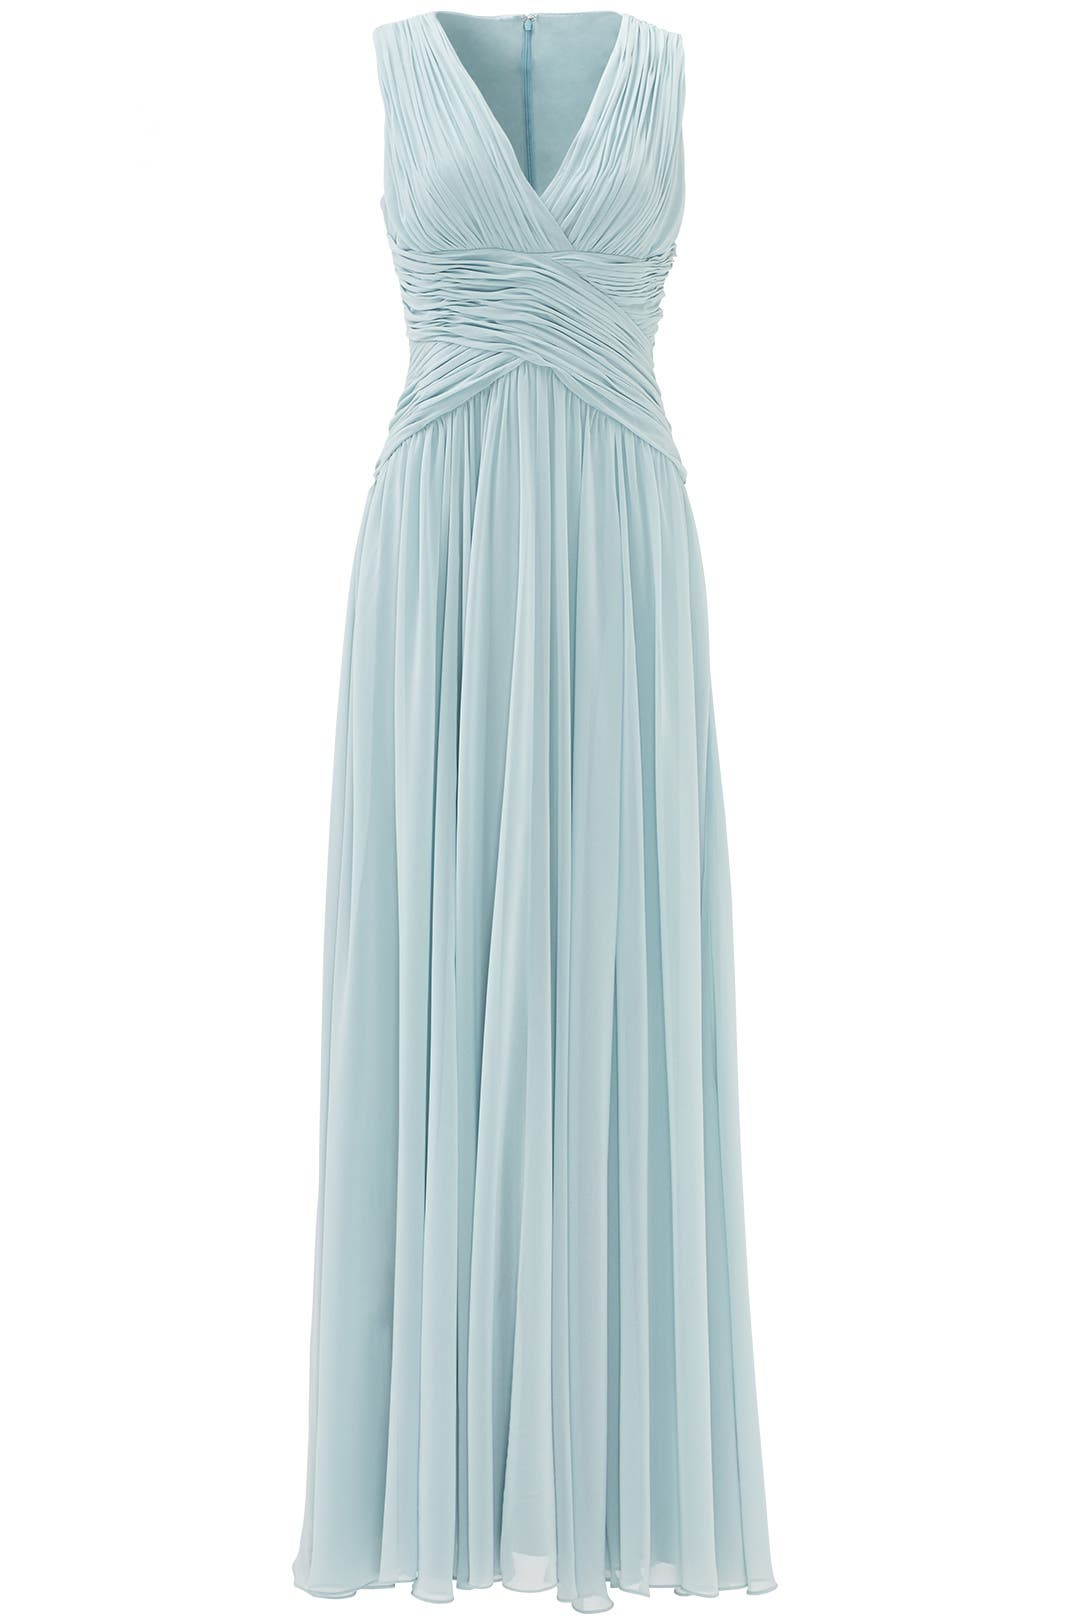 Blue Paloma Gown by Slate & Willow for $50 - $70 | Rent the Runway